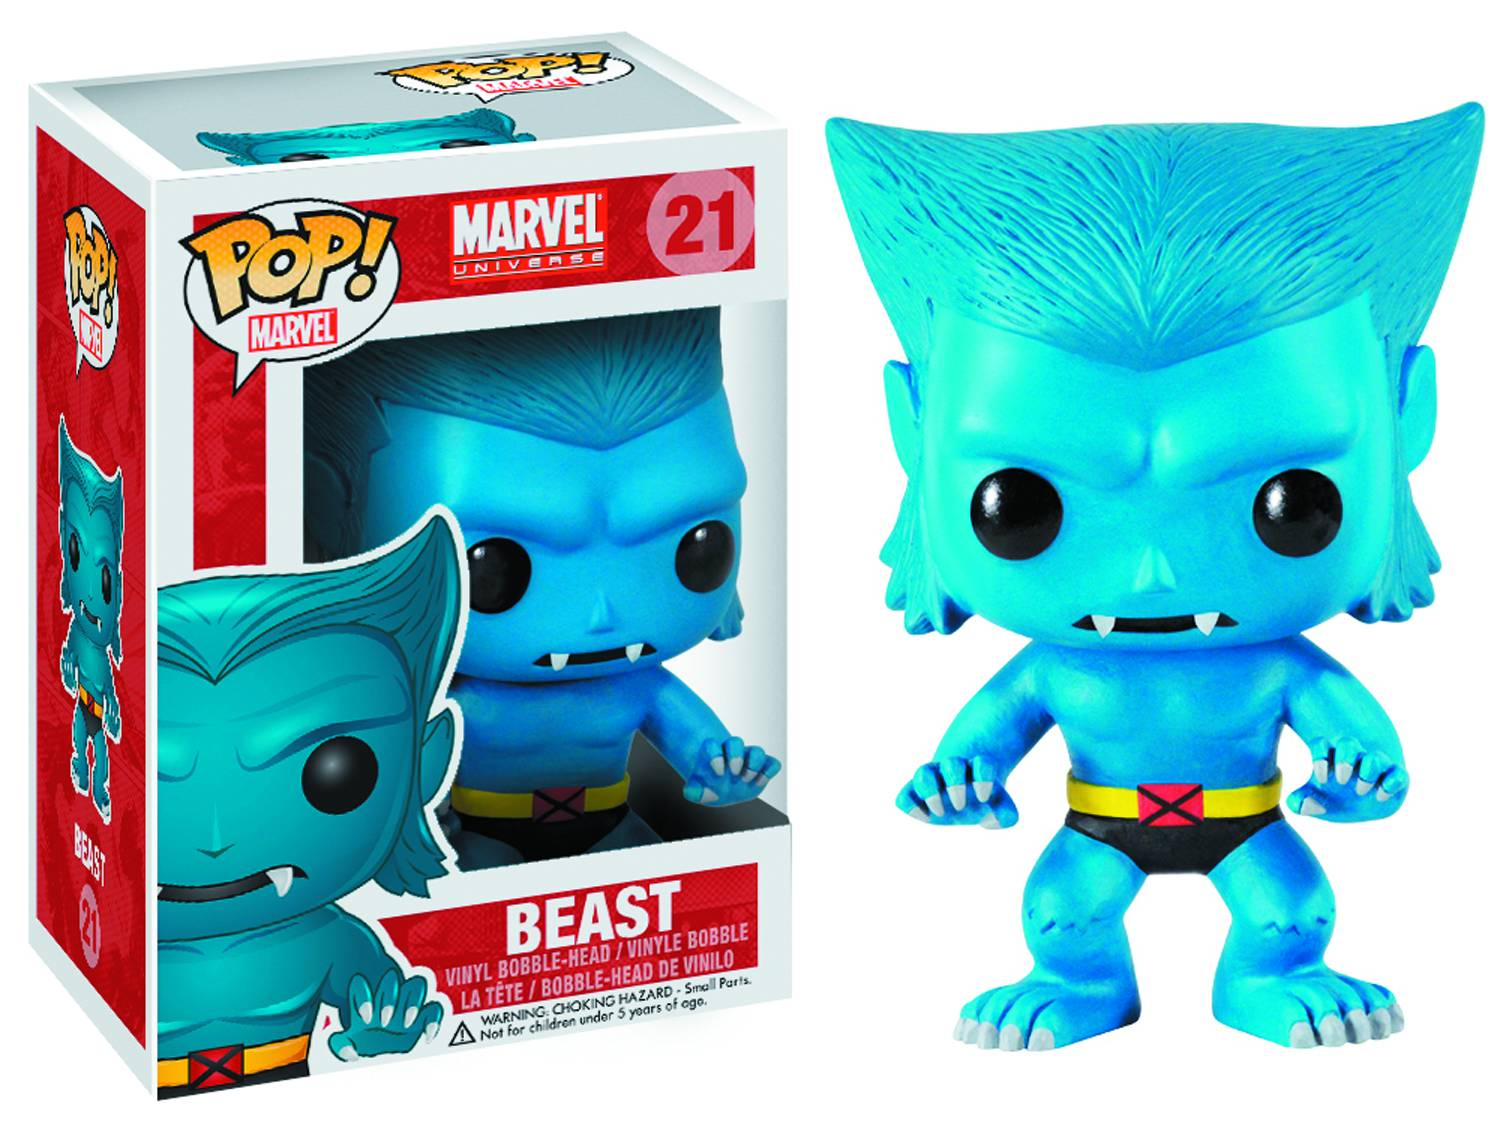 Marvel Pop X-Men Beast figurine 10cm